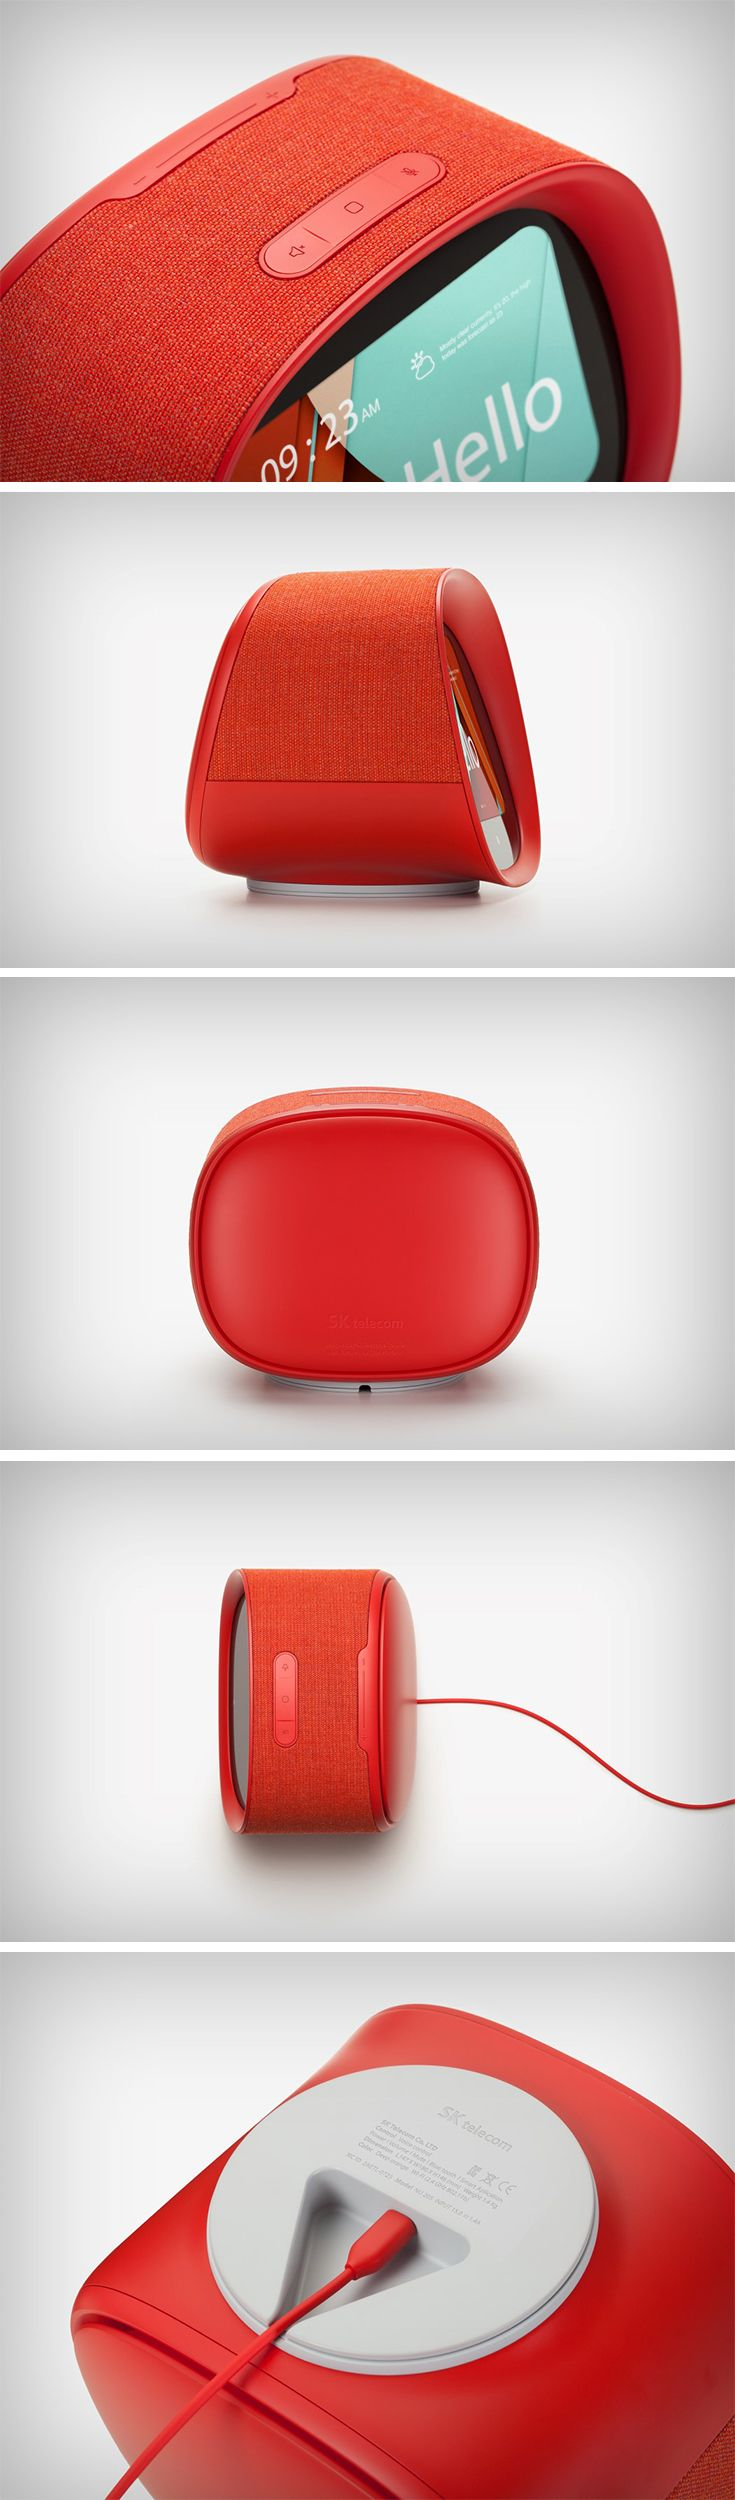 Bringing their funky, playful, retro design sensibilities to yet another product, BKID reinvents the artificial intelligence concierge for SK Telecom with their product, the Fairy. Designed to go head-on with the likes of Amazon's Echo, Google's Home, and Apple's Homepod, the Fairy is probably the first ever AI assistant to enter your home, coming from a national telecom service.